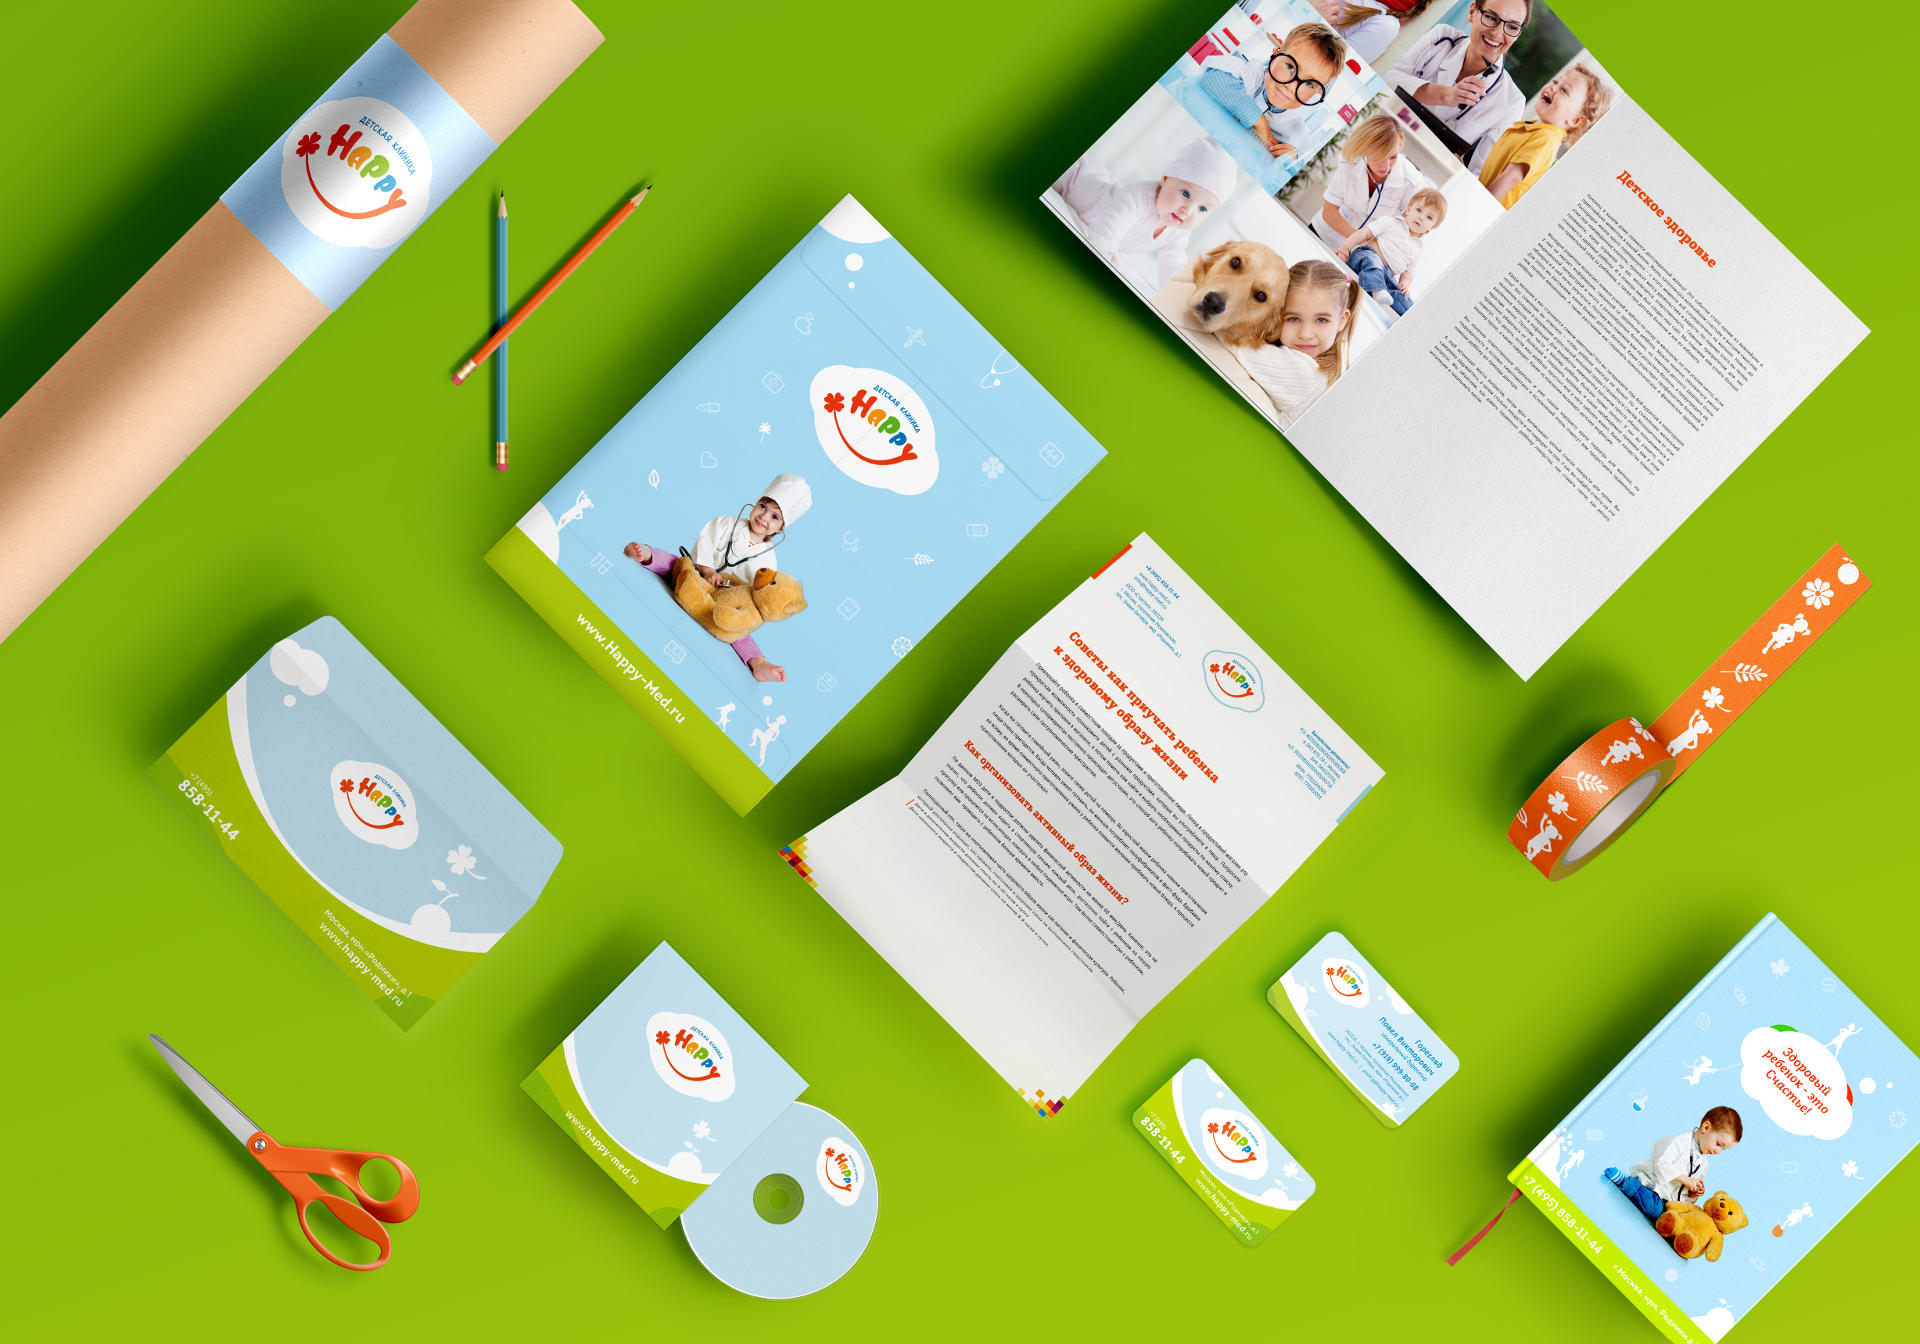 Сorporate identity для детского of the medical center, Kids medical center corporate identity